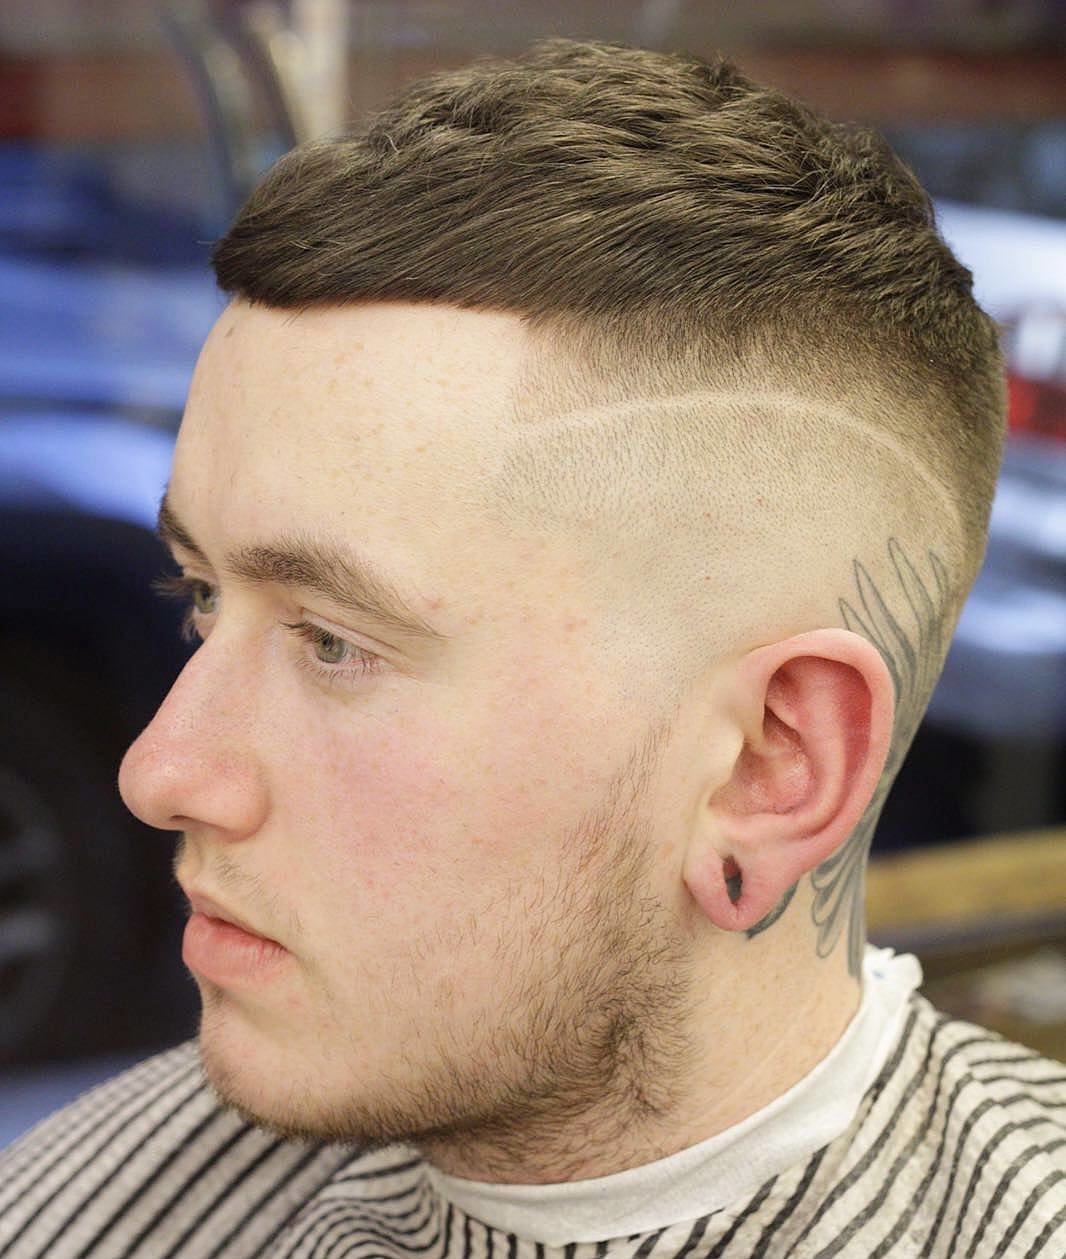 New 20 Very Short Haircuts For Men Ideas With Pictures